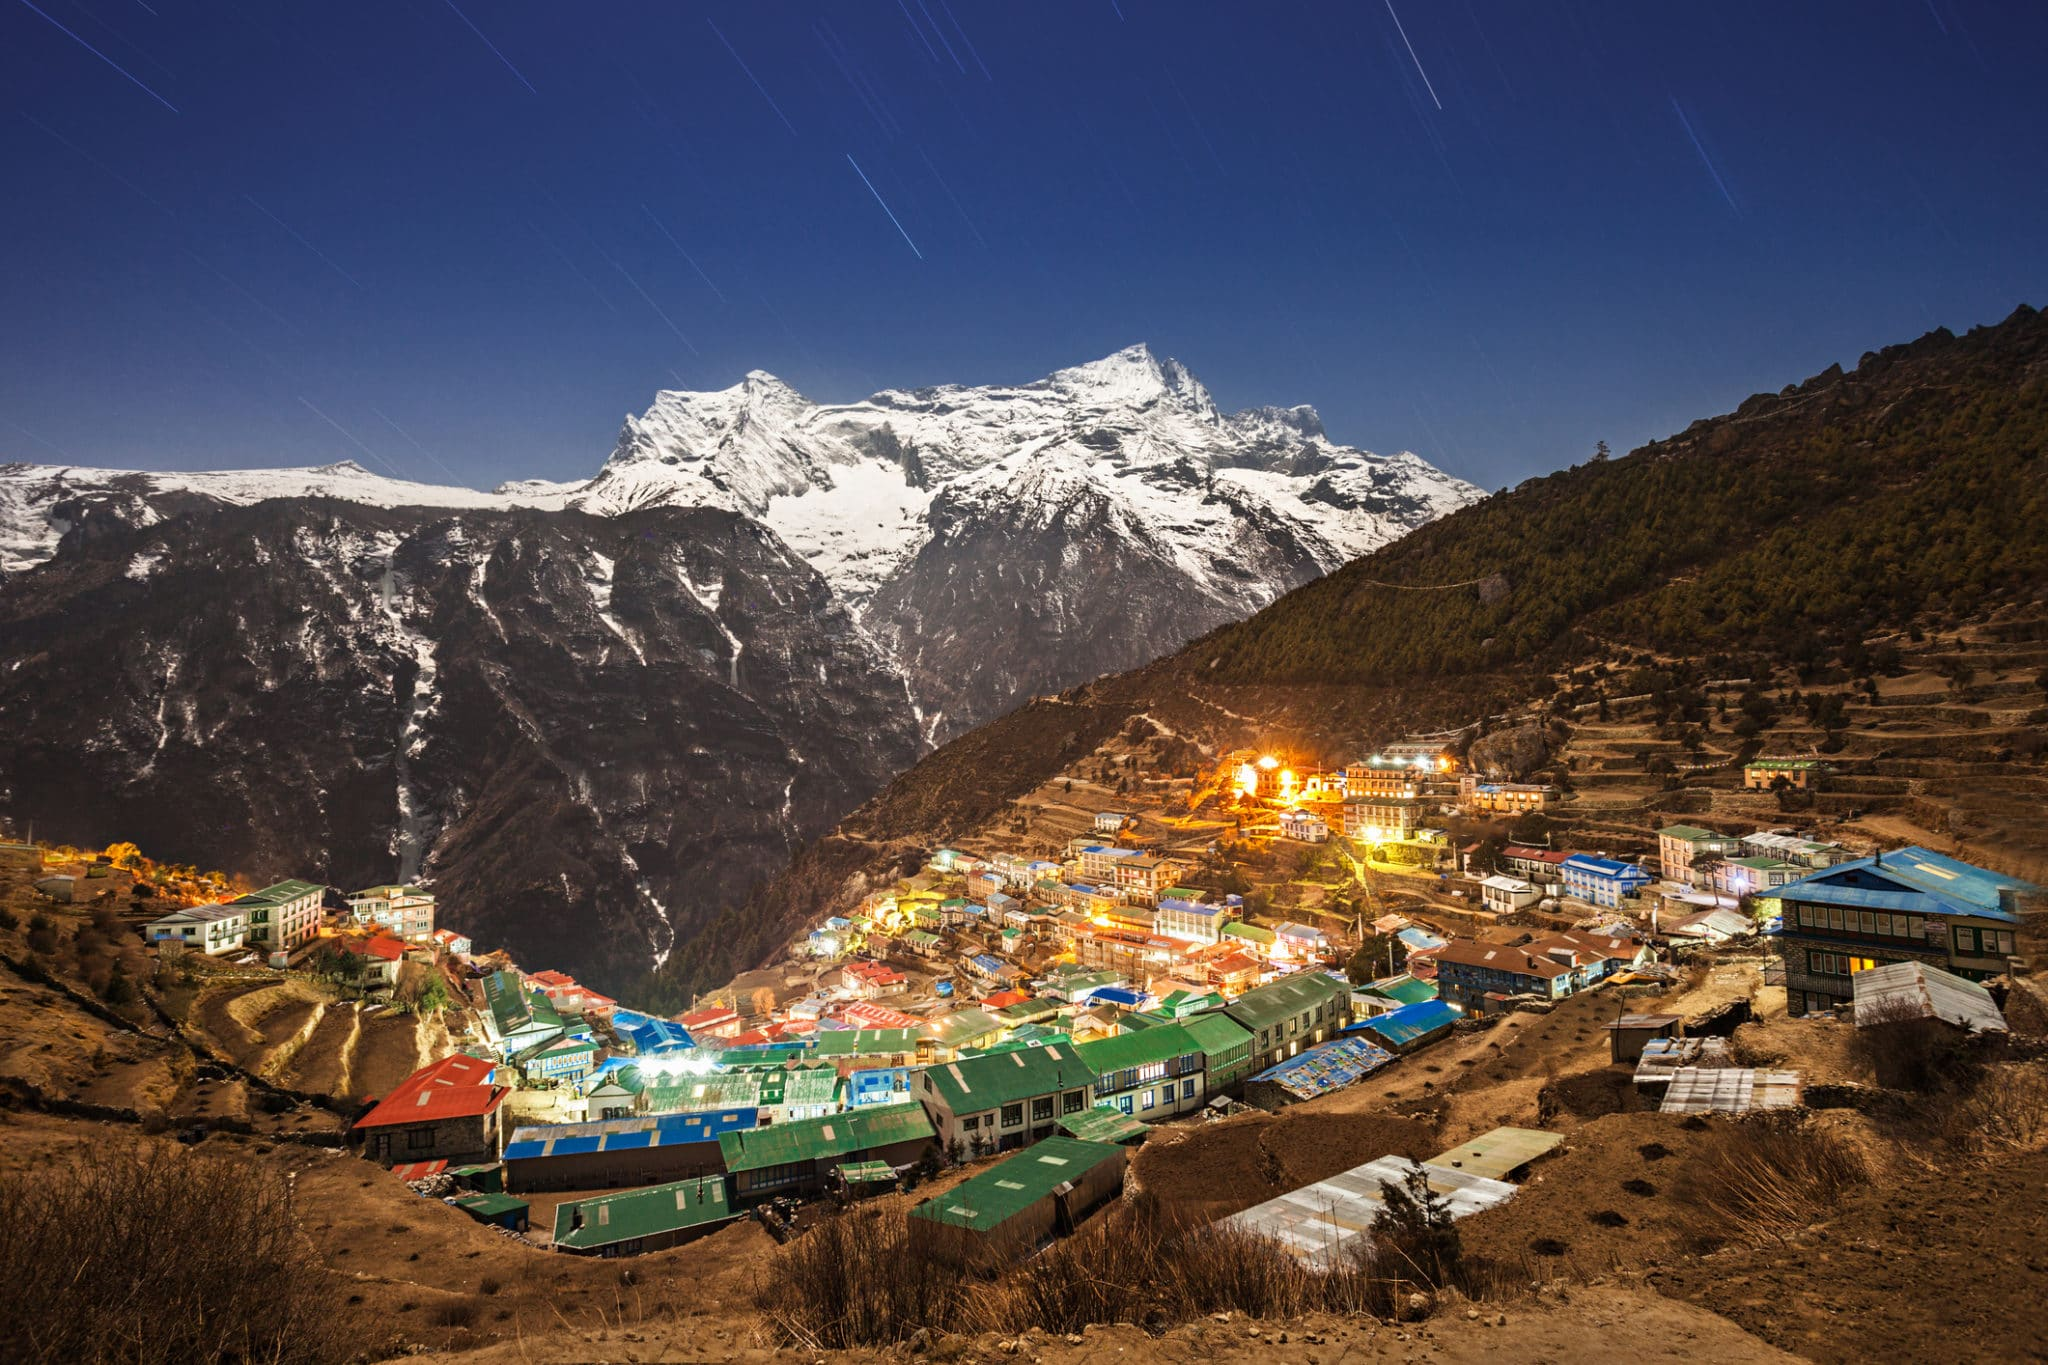 How cold is Everest Base Camp